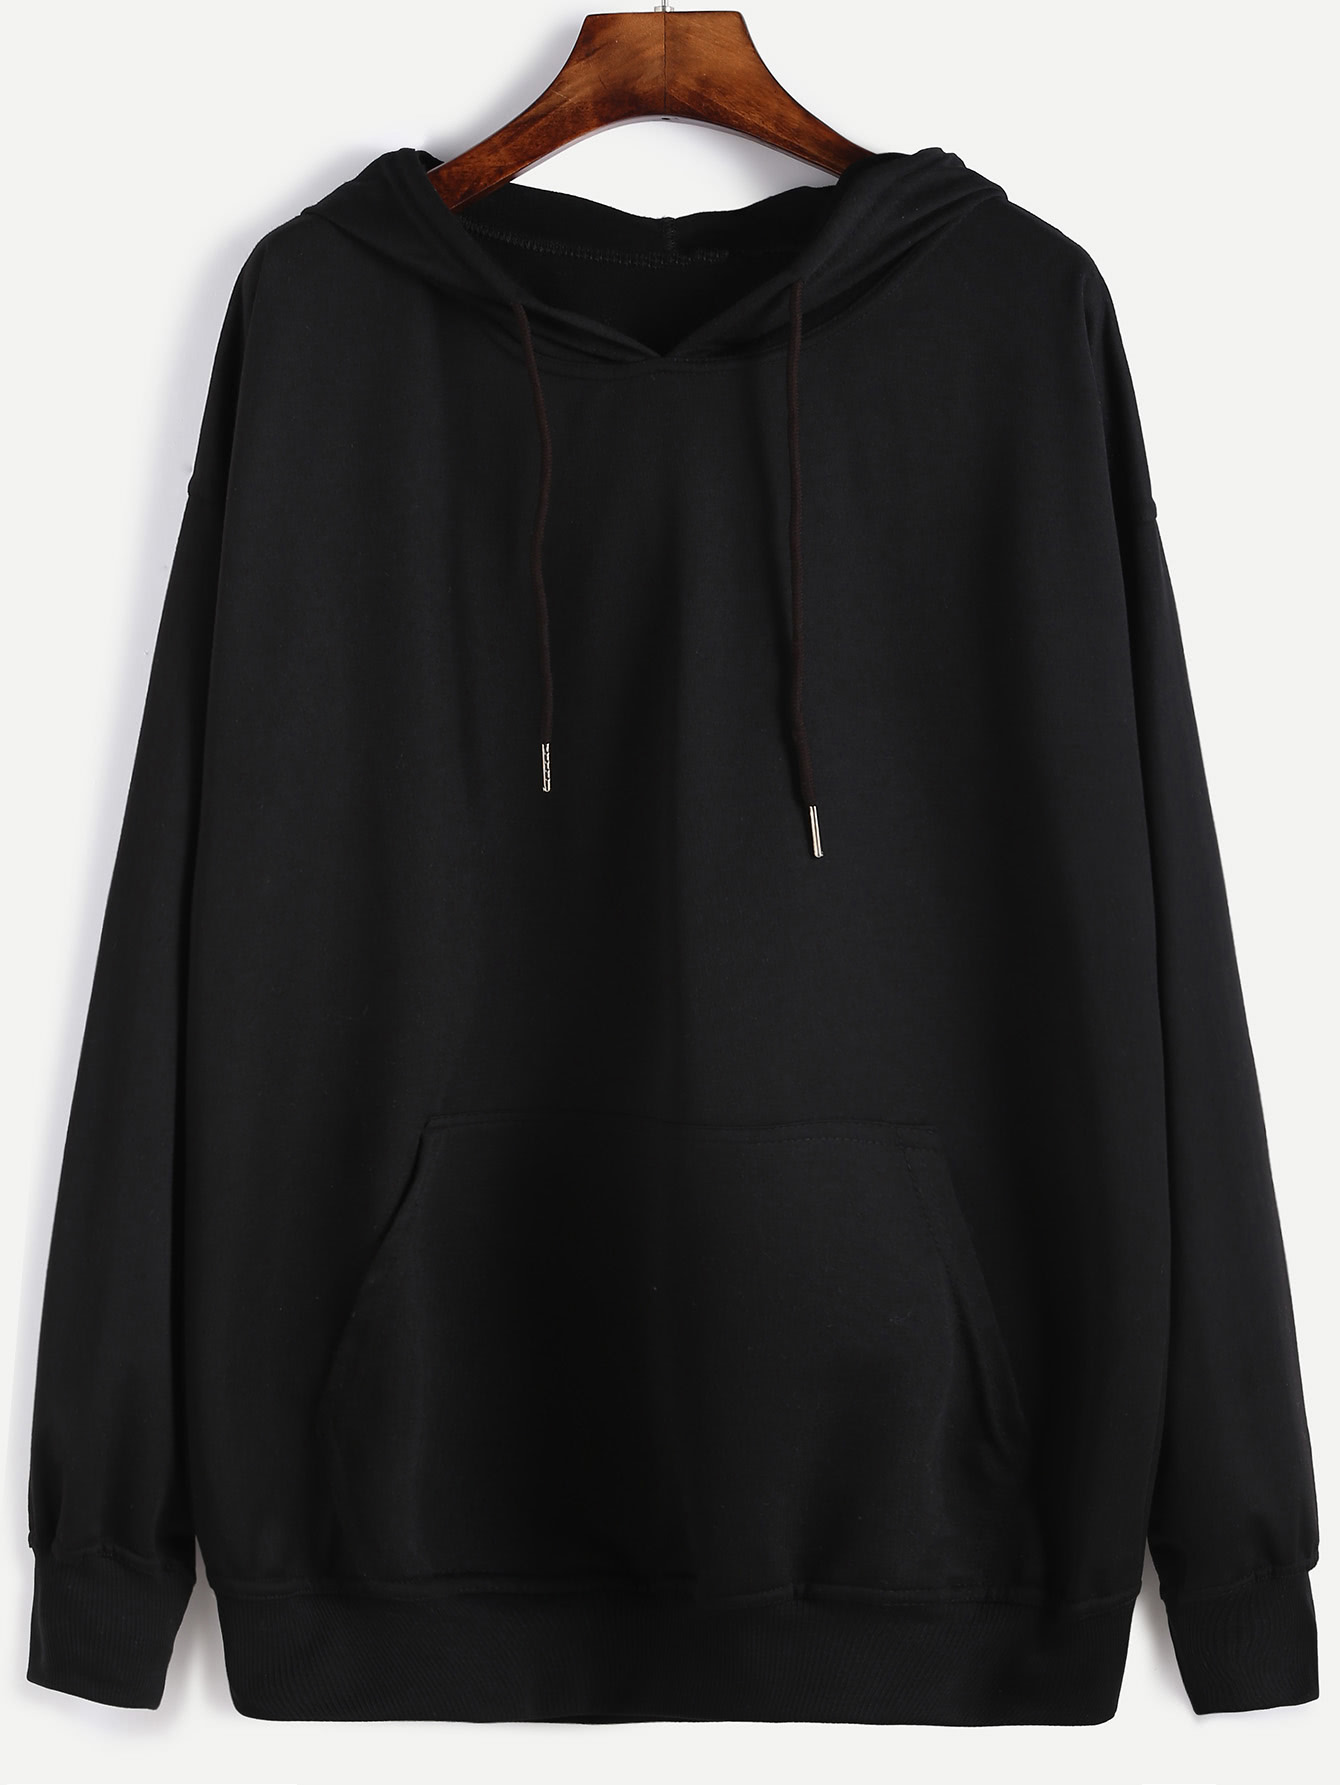 Drop Shoulder Hooded Sweatshirt drop shoulder ripped hooded crop sweatshirt